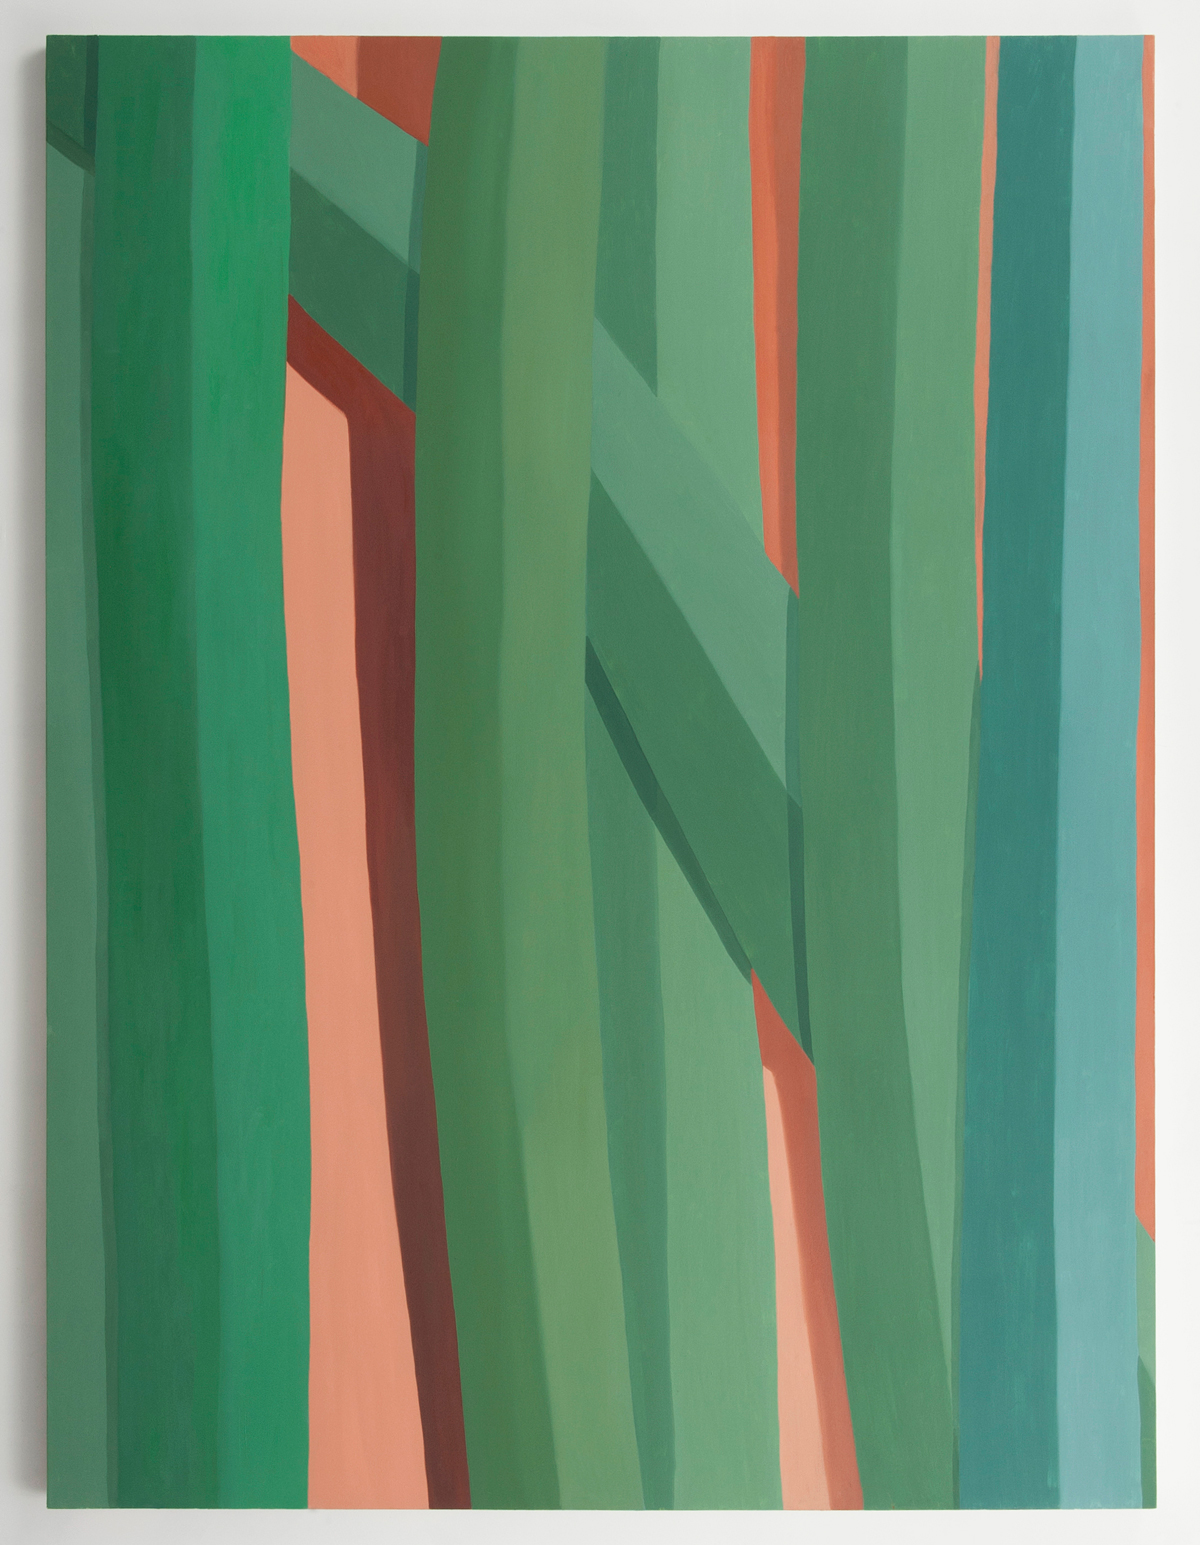 Corydon Cowansage, Grass 9, 2014, oil on canvas, 96 x 72 inches